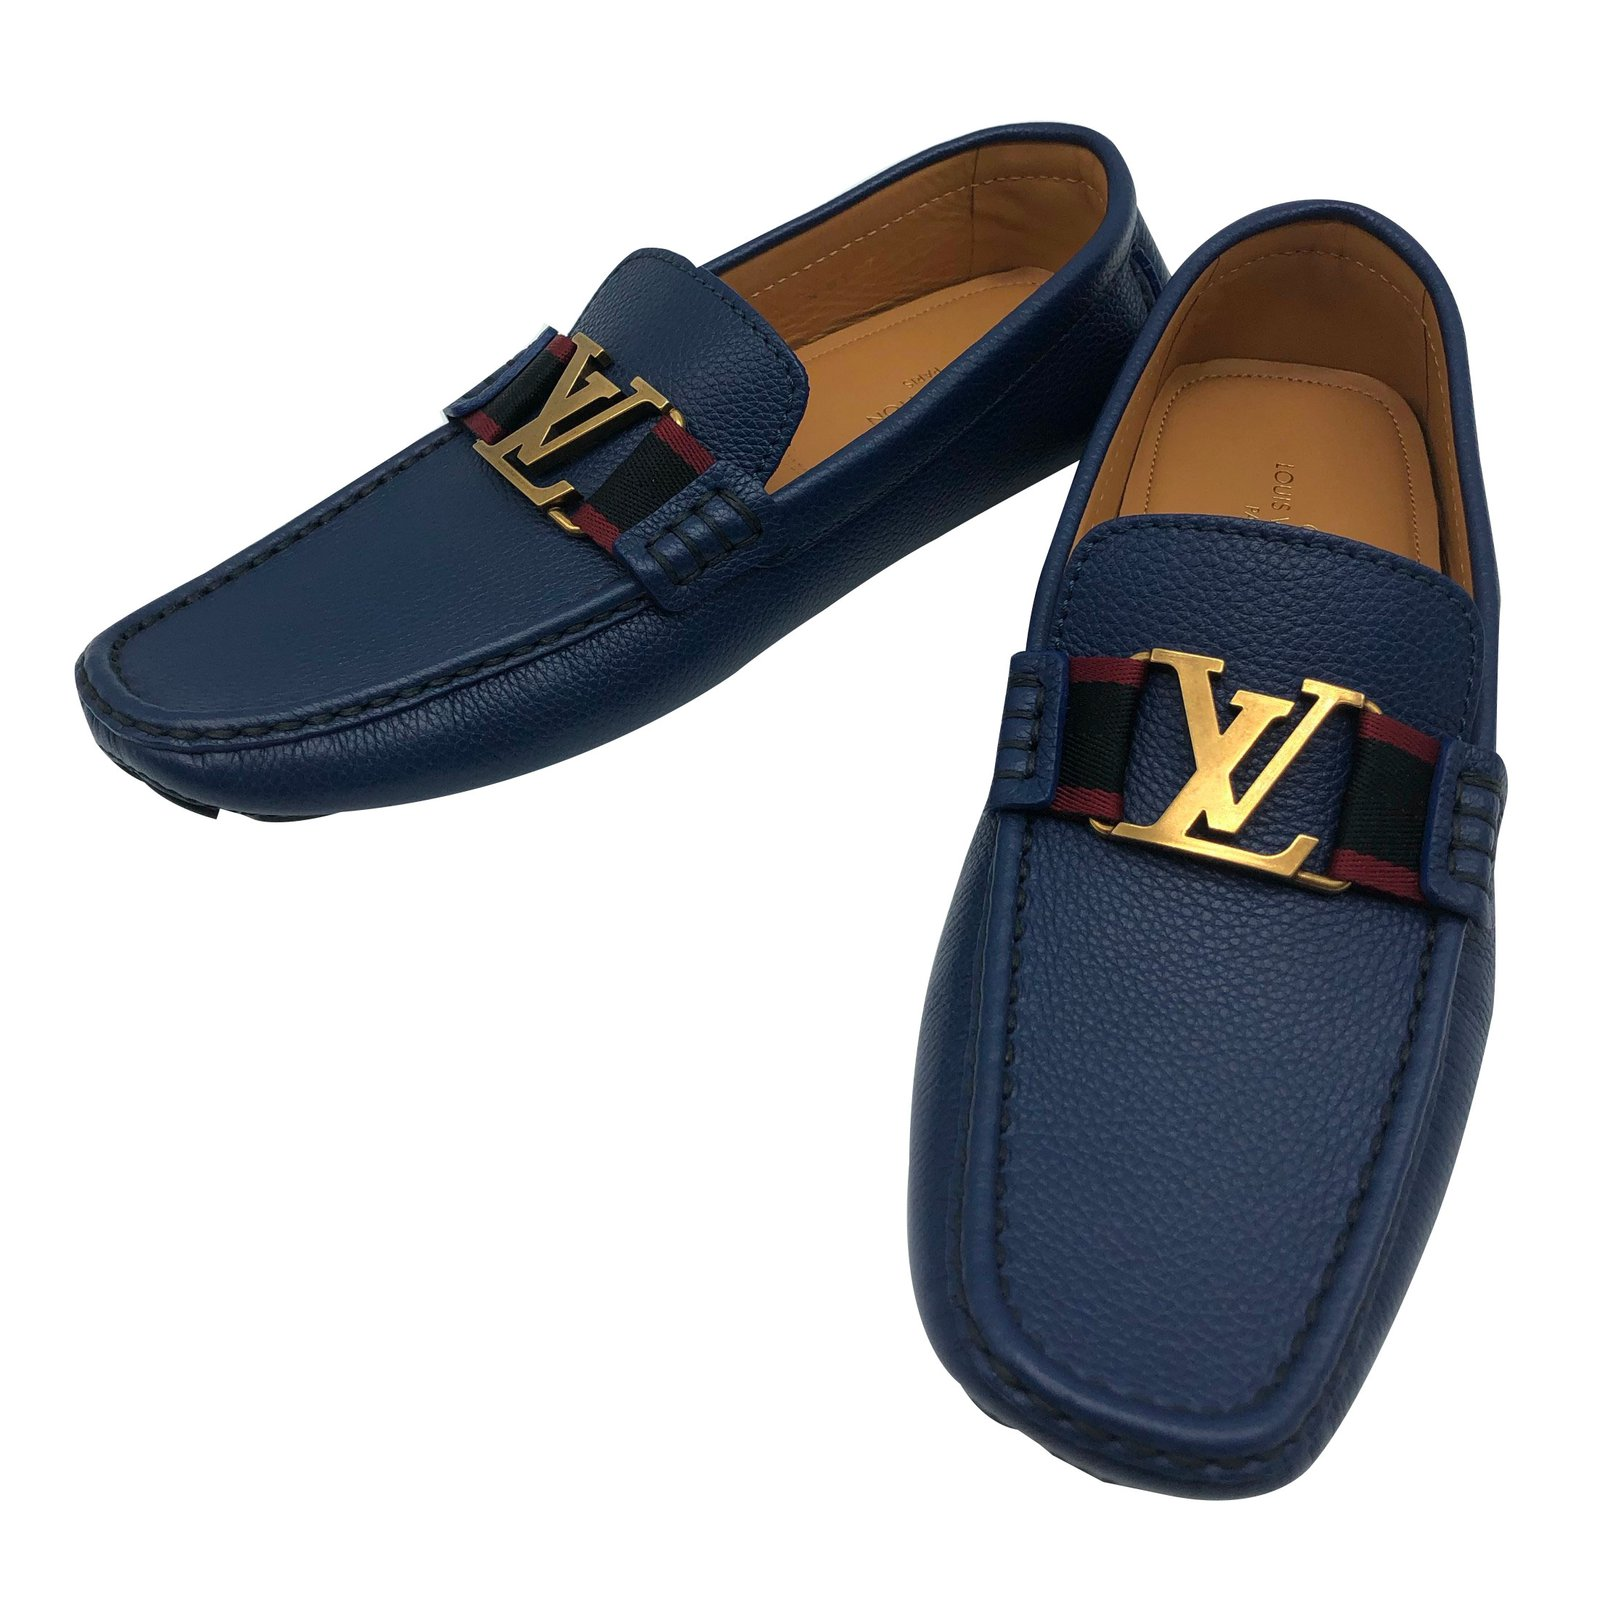 Loafers Slip ons Leather Navy blue ref